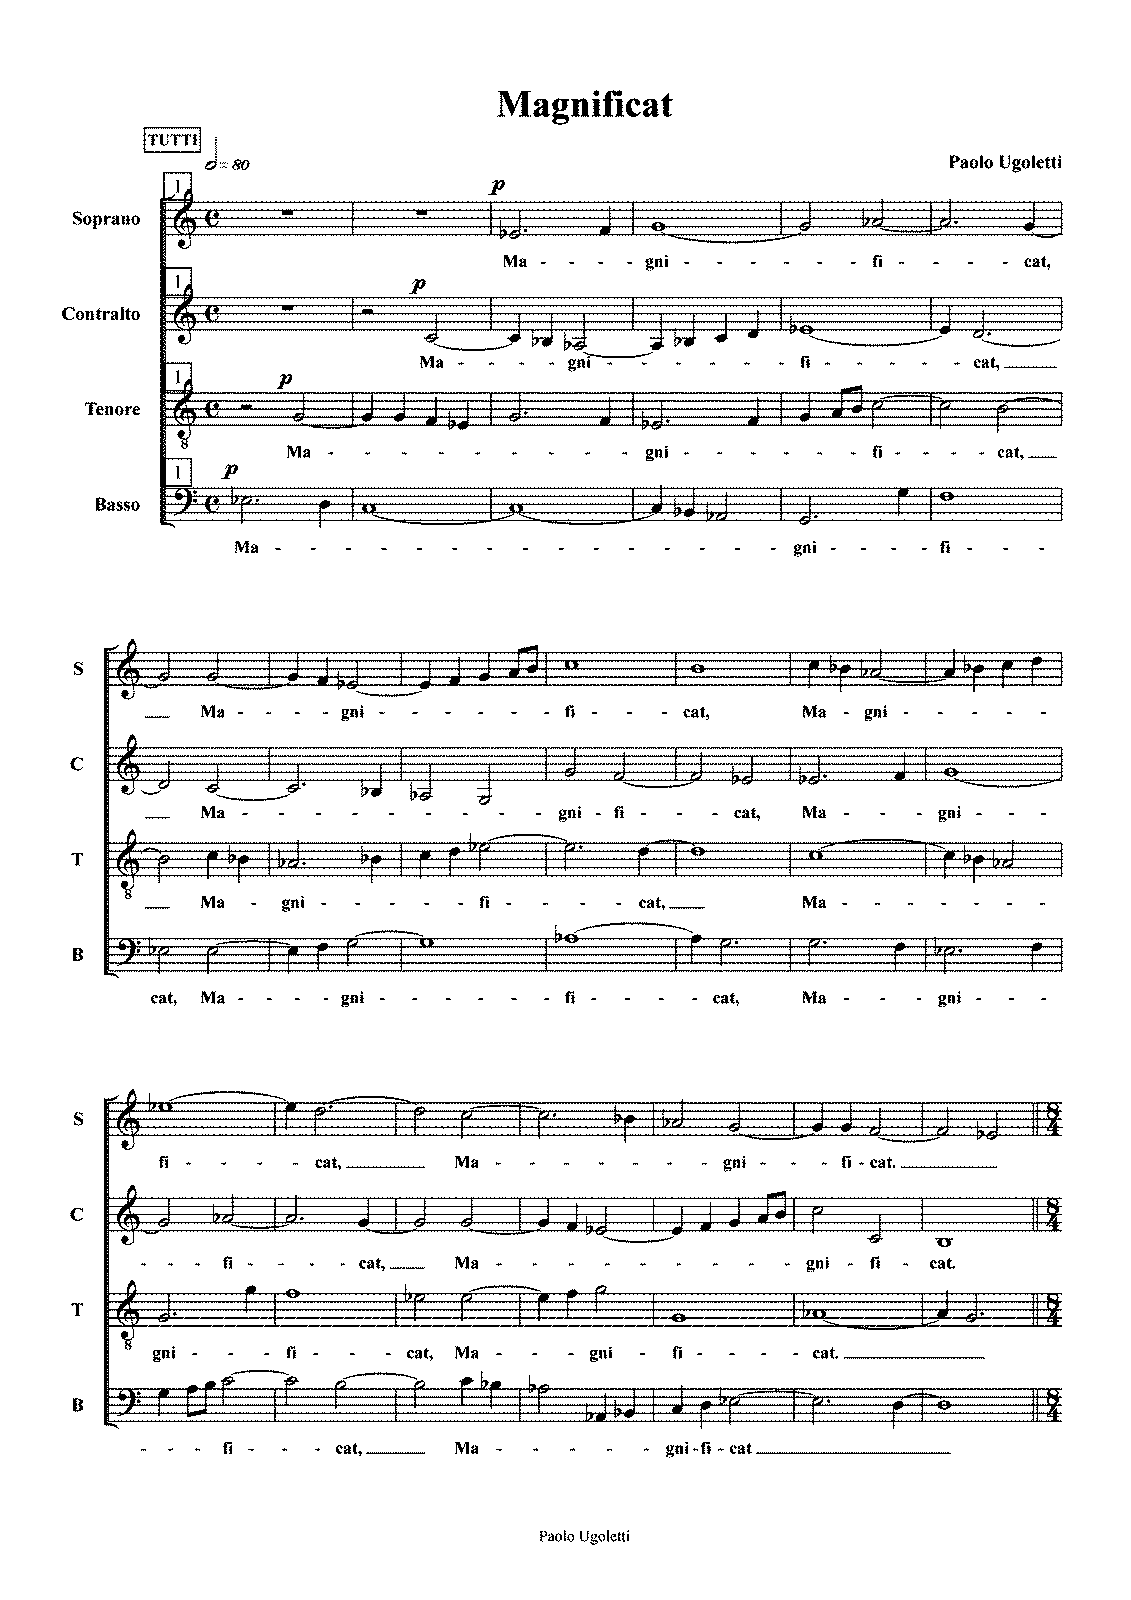 PMLP79878-Paolo Ugoletti Magnificat for mixed choir pdf.pdf